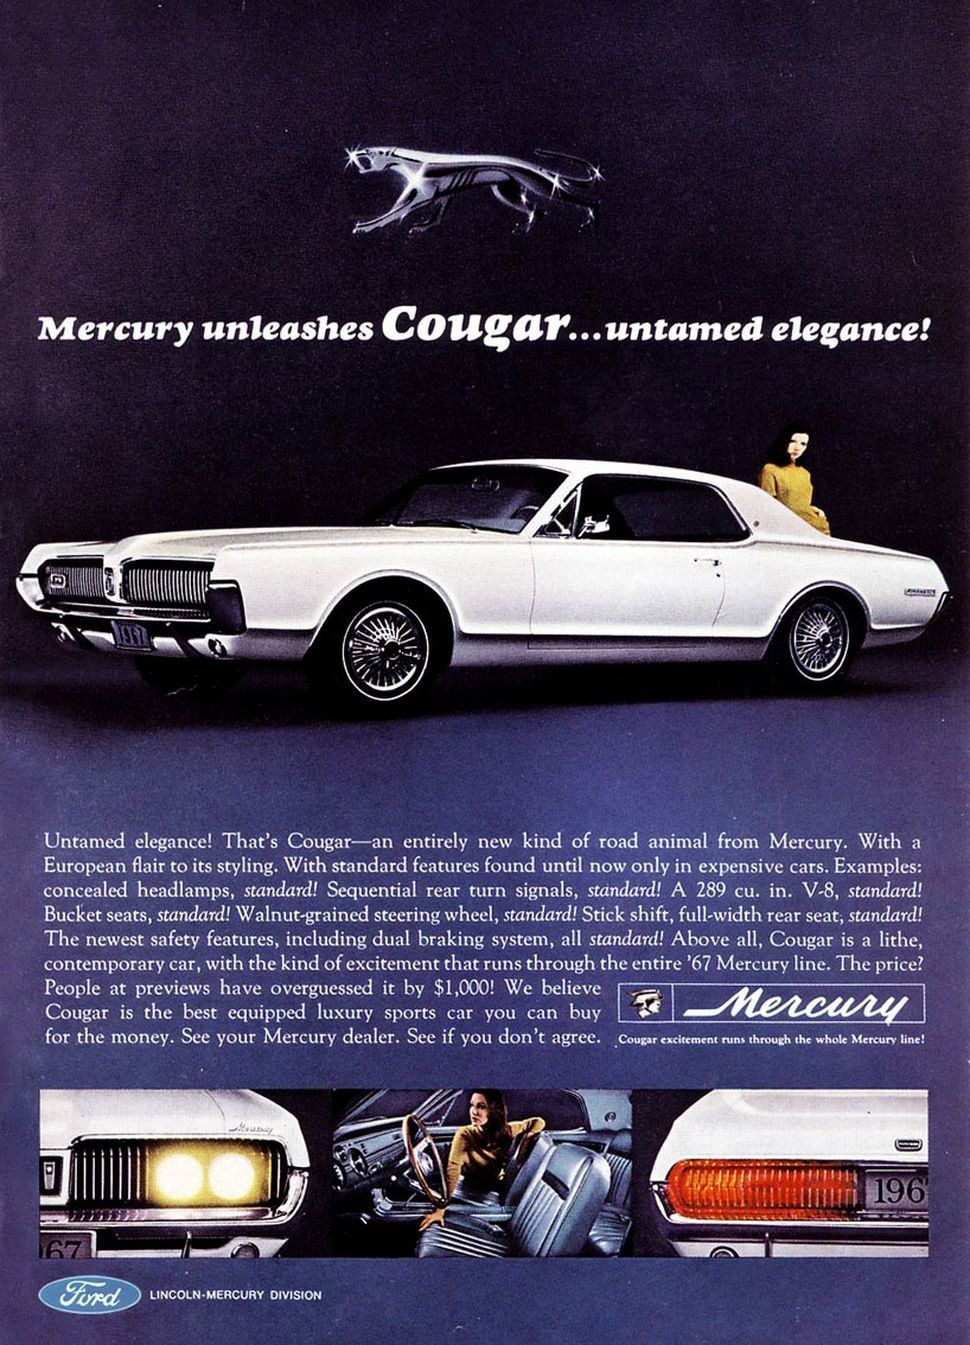 Gone, but not forgotten – Mercury's Cougar turns 50